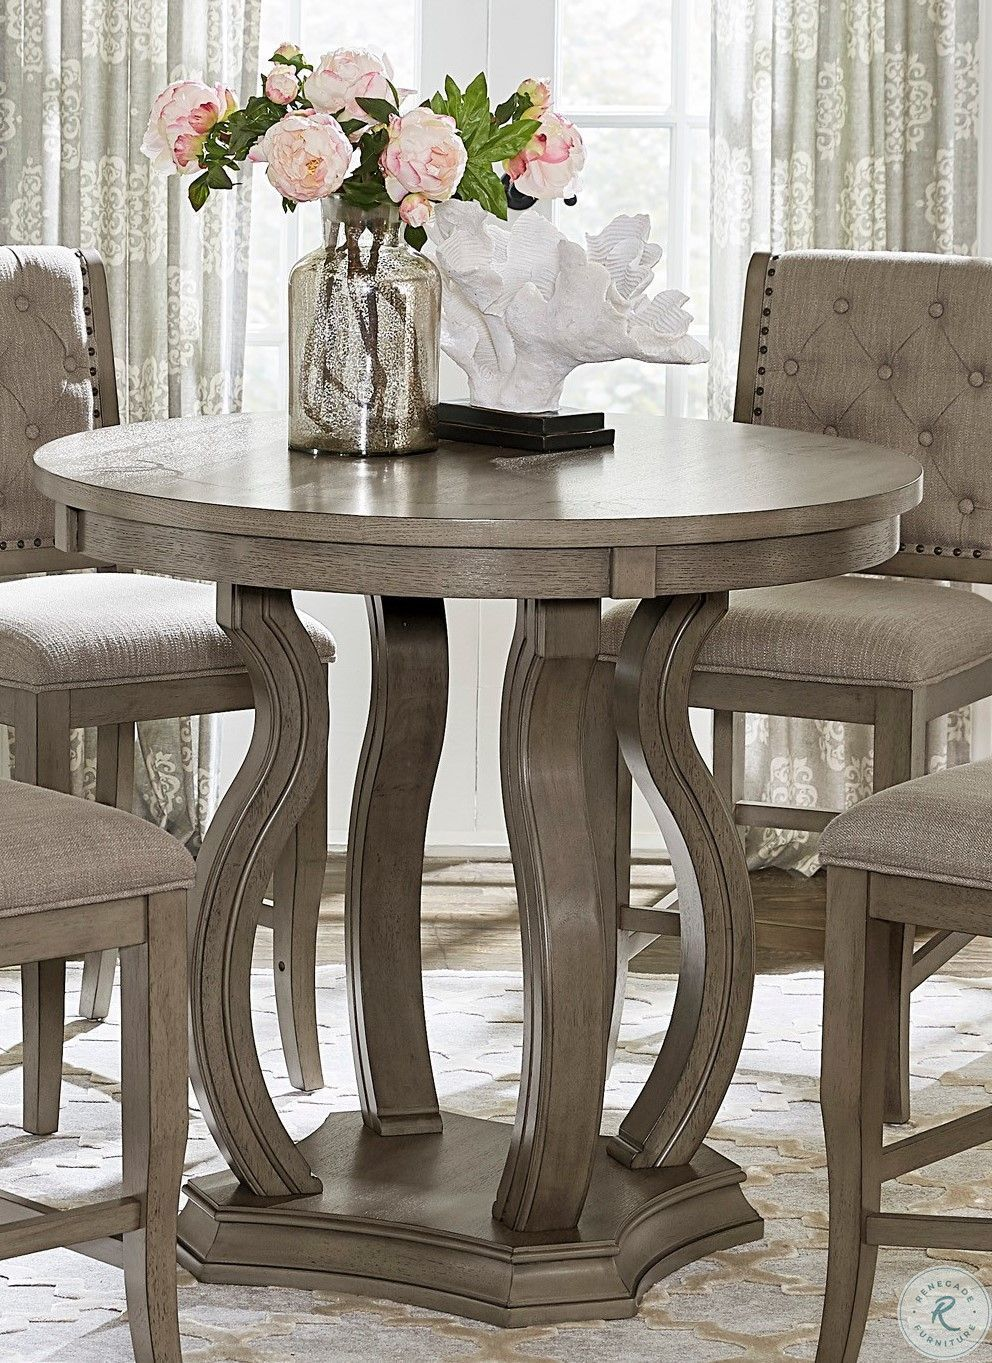 Dovetail Merak Round Dining Table Dining Table 60 Round Dining Table Round Dining Table